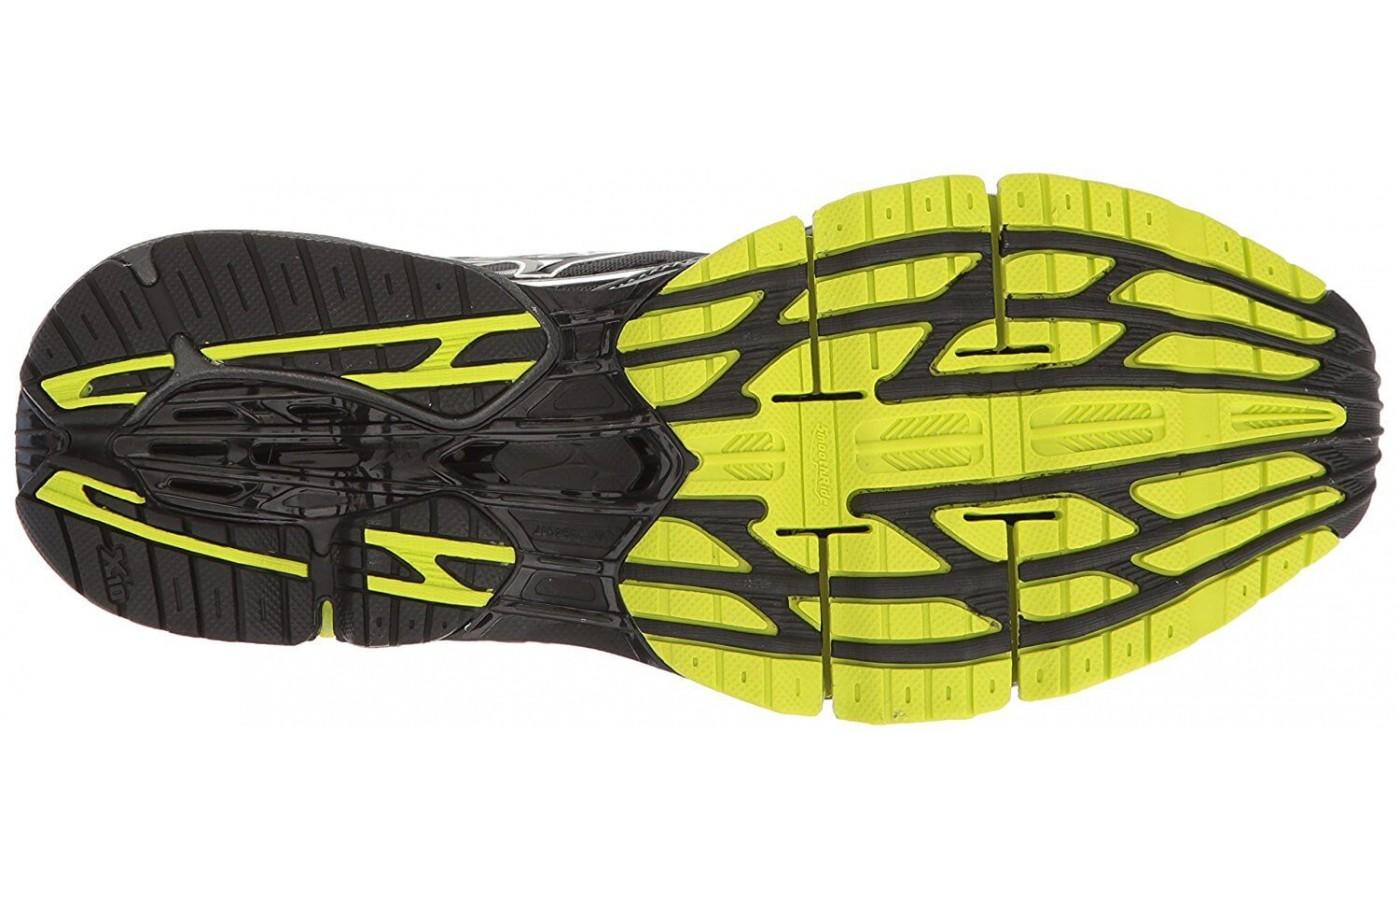 The outsole is made using a durable carbon rubber.